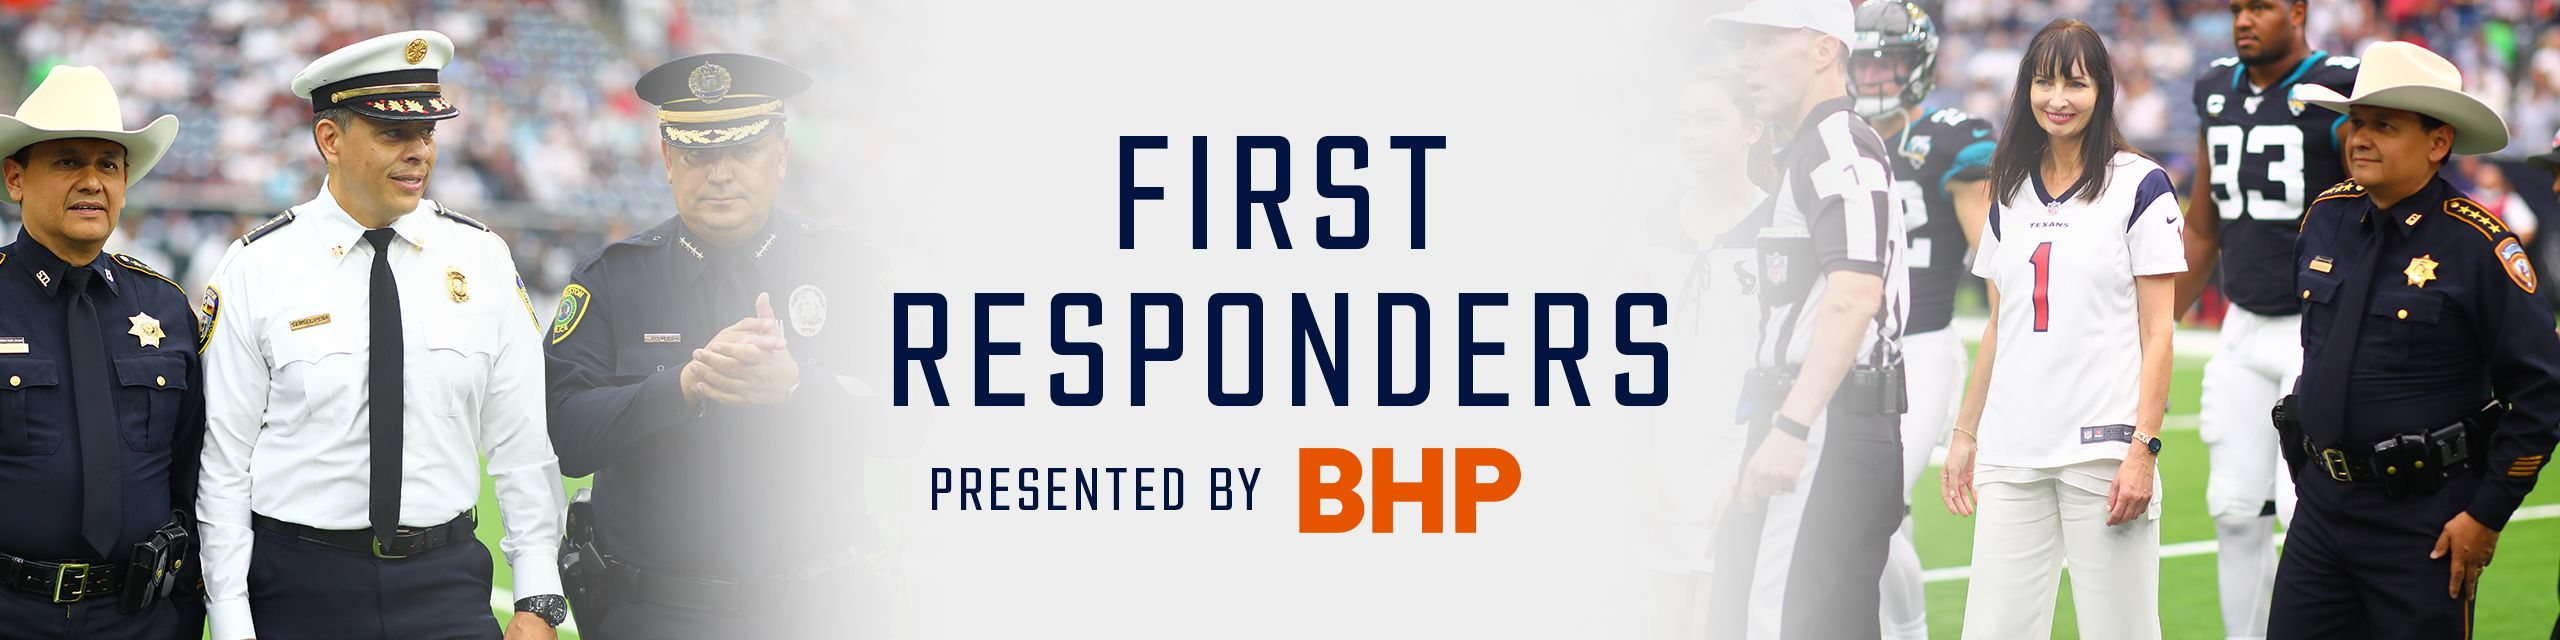 First Responders presented by BHP